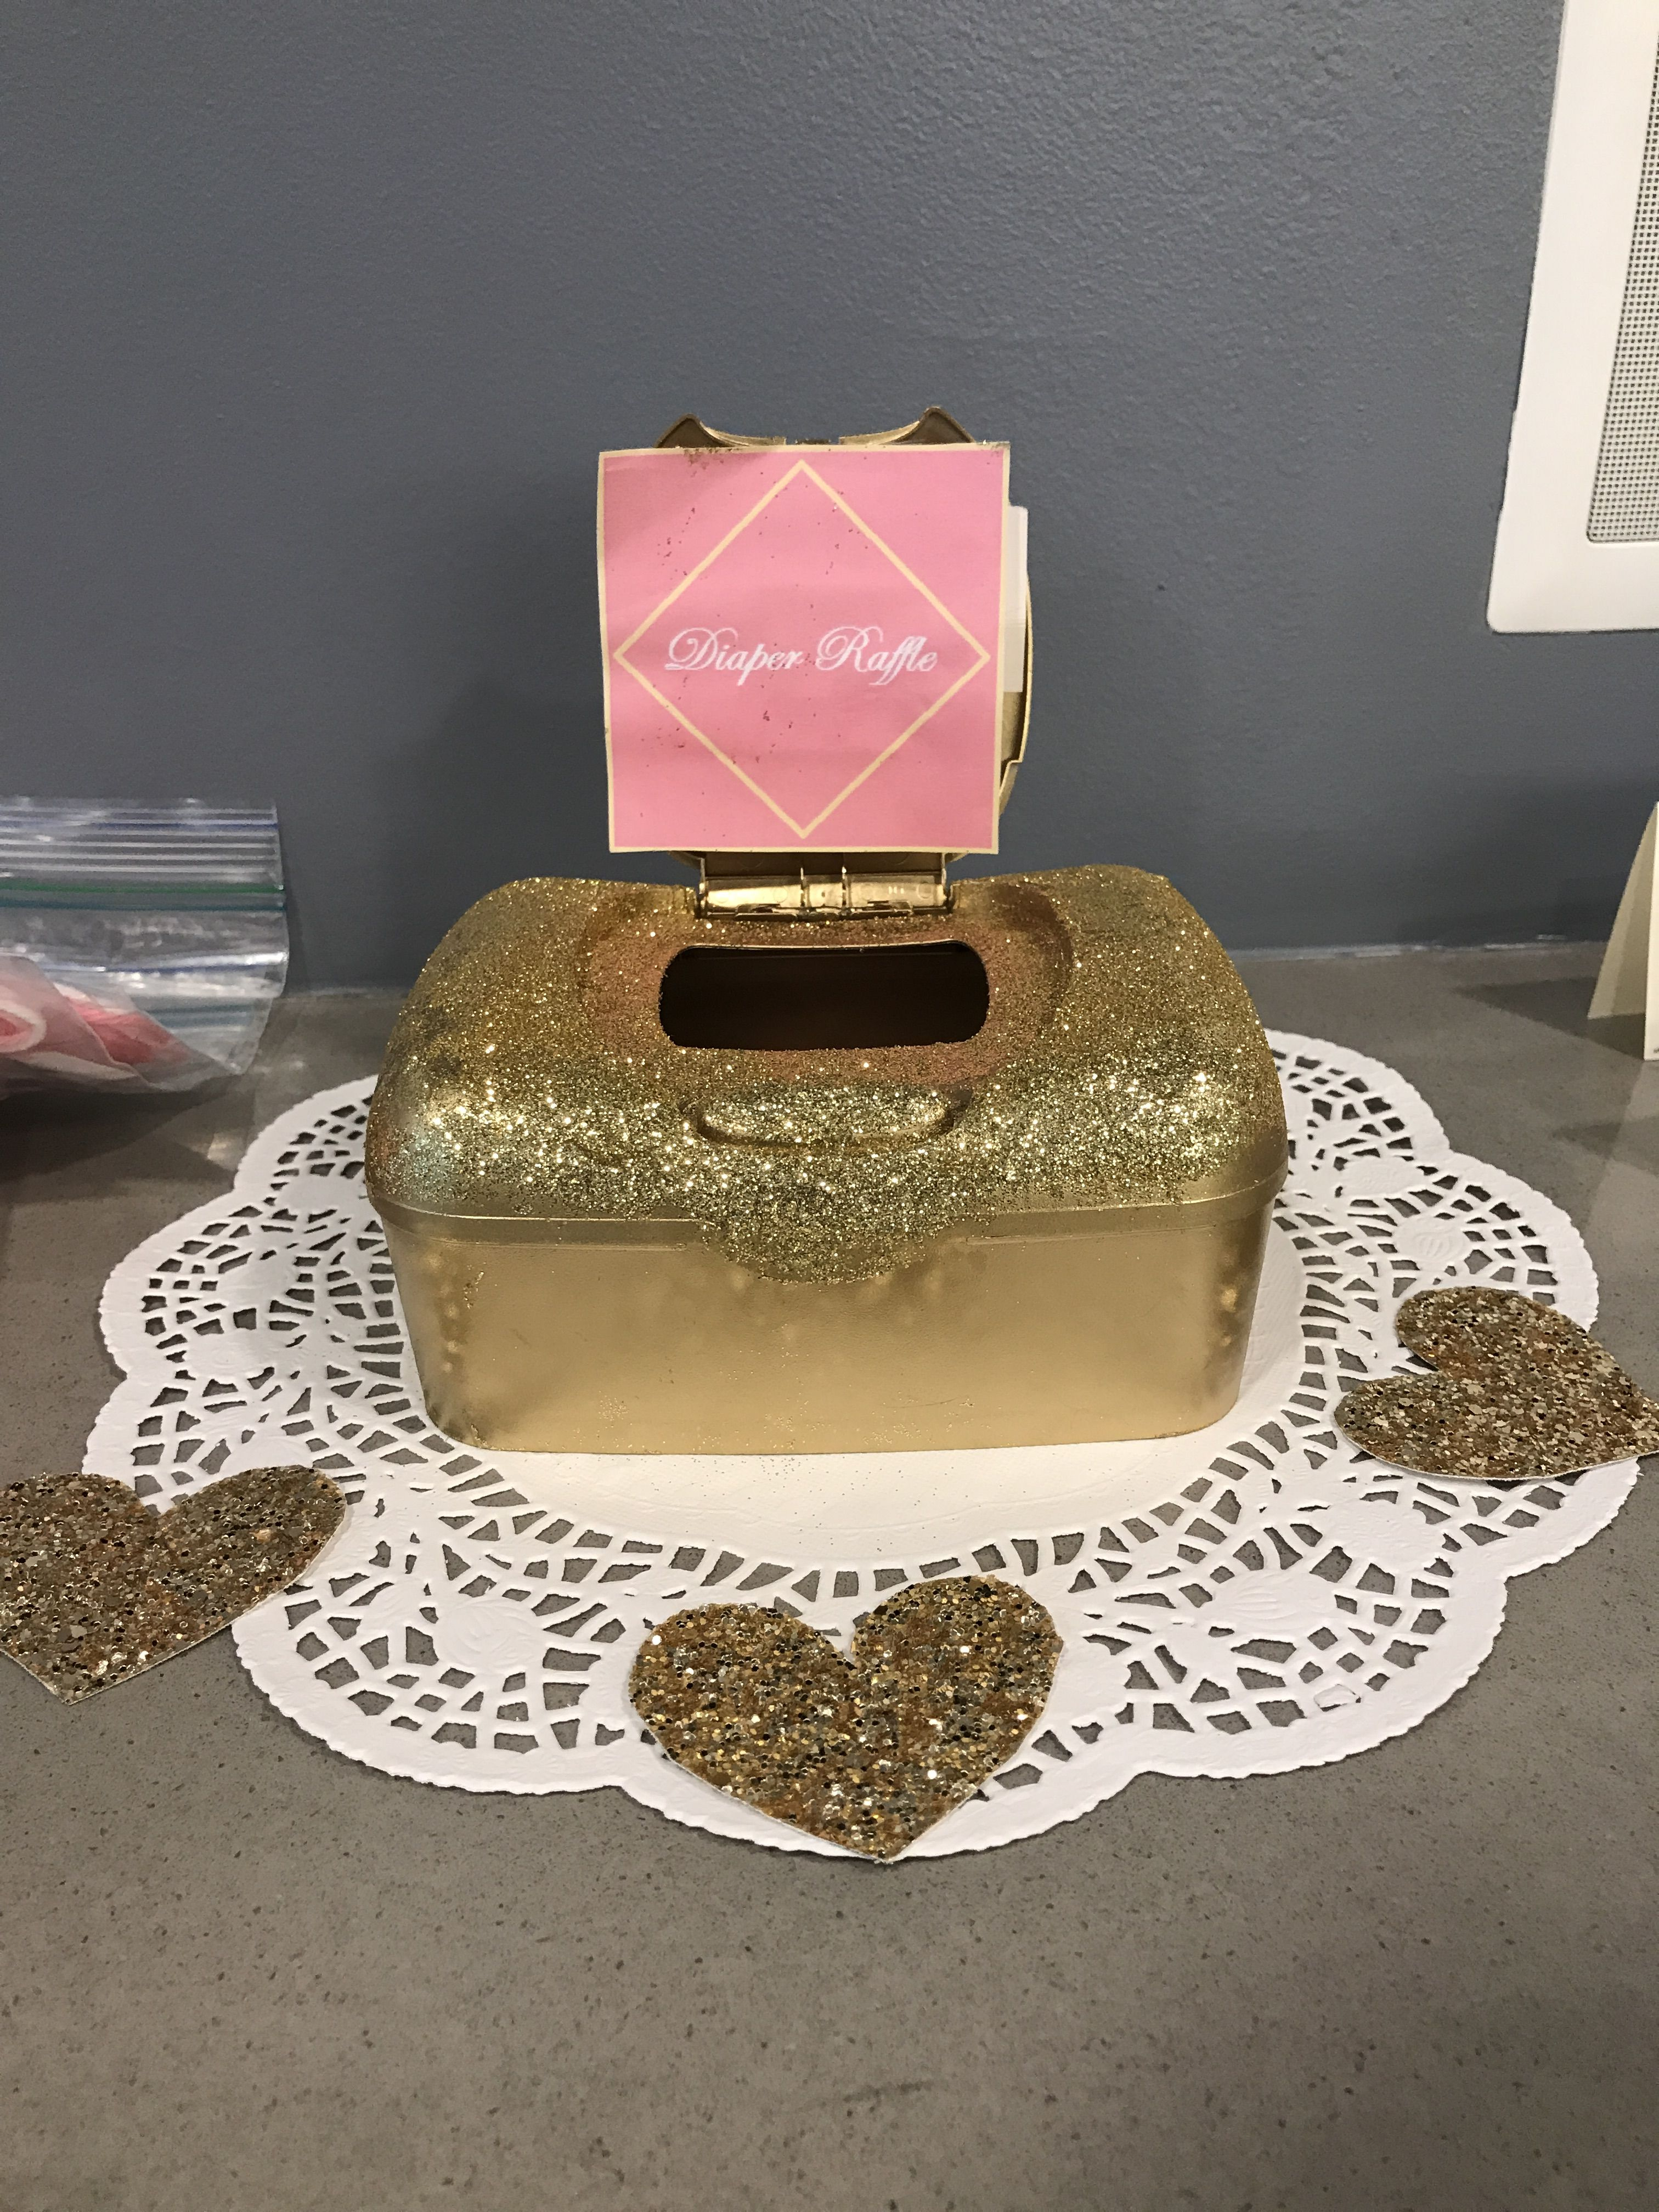 Raffle Box Ideas | Examples and Forms